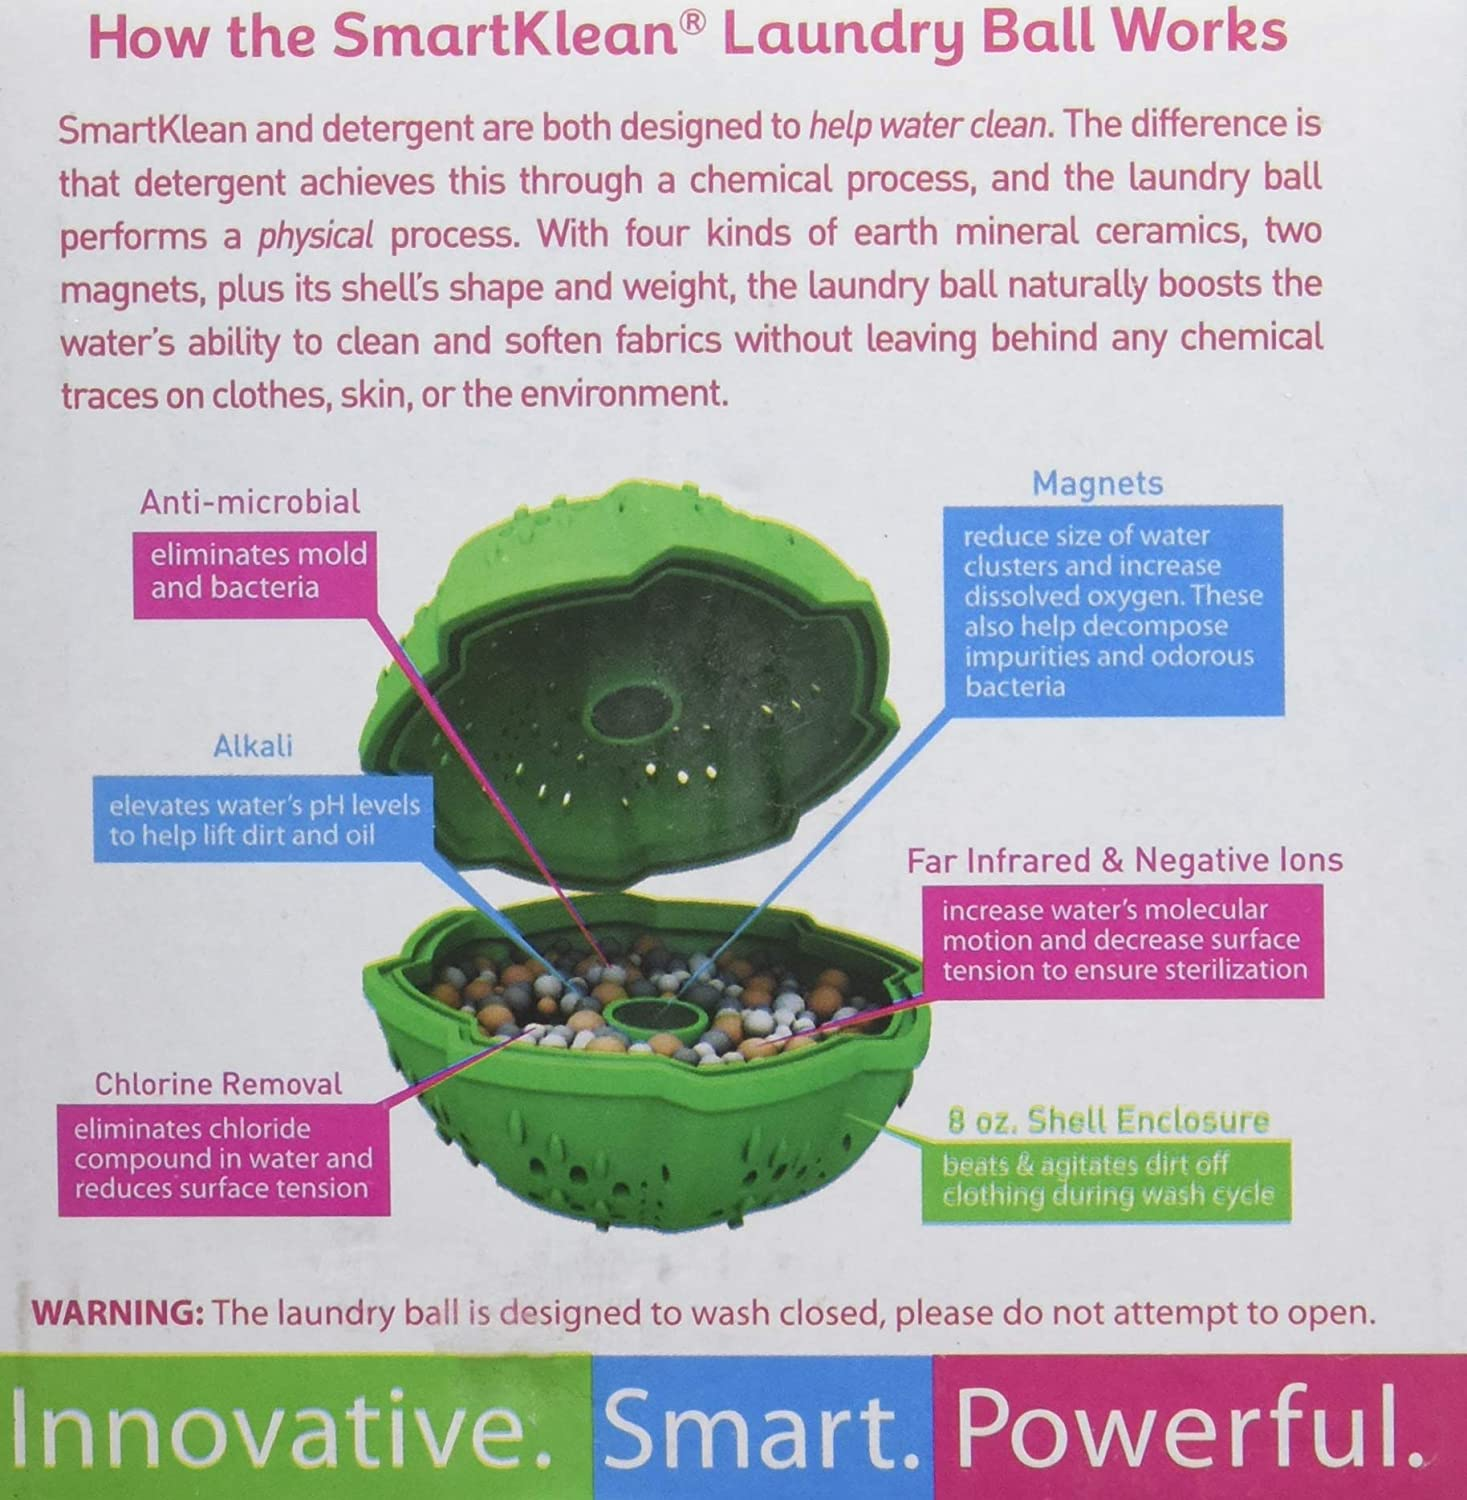 Buy Smartklean Laundry Ball Ditch Toxic Laundry Detergents